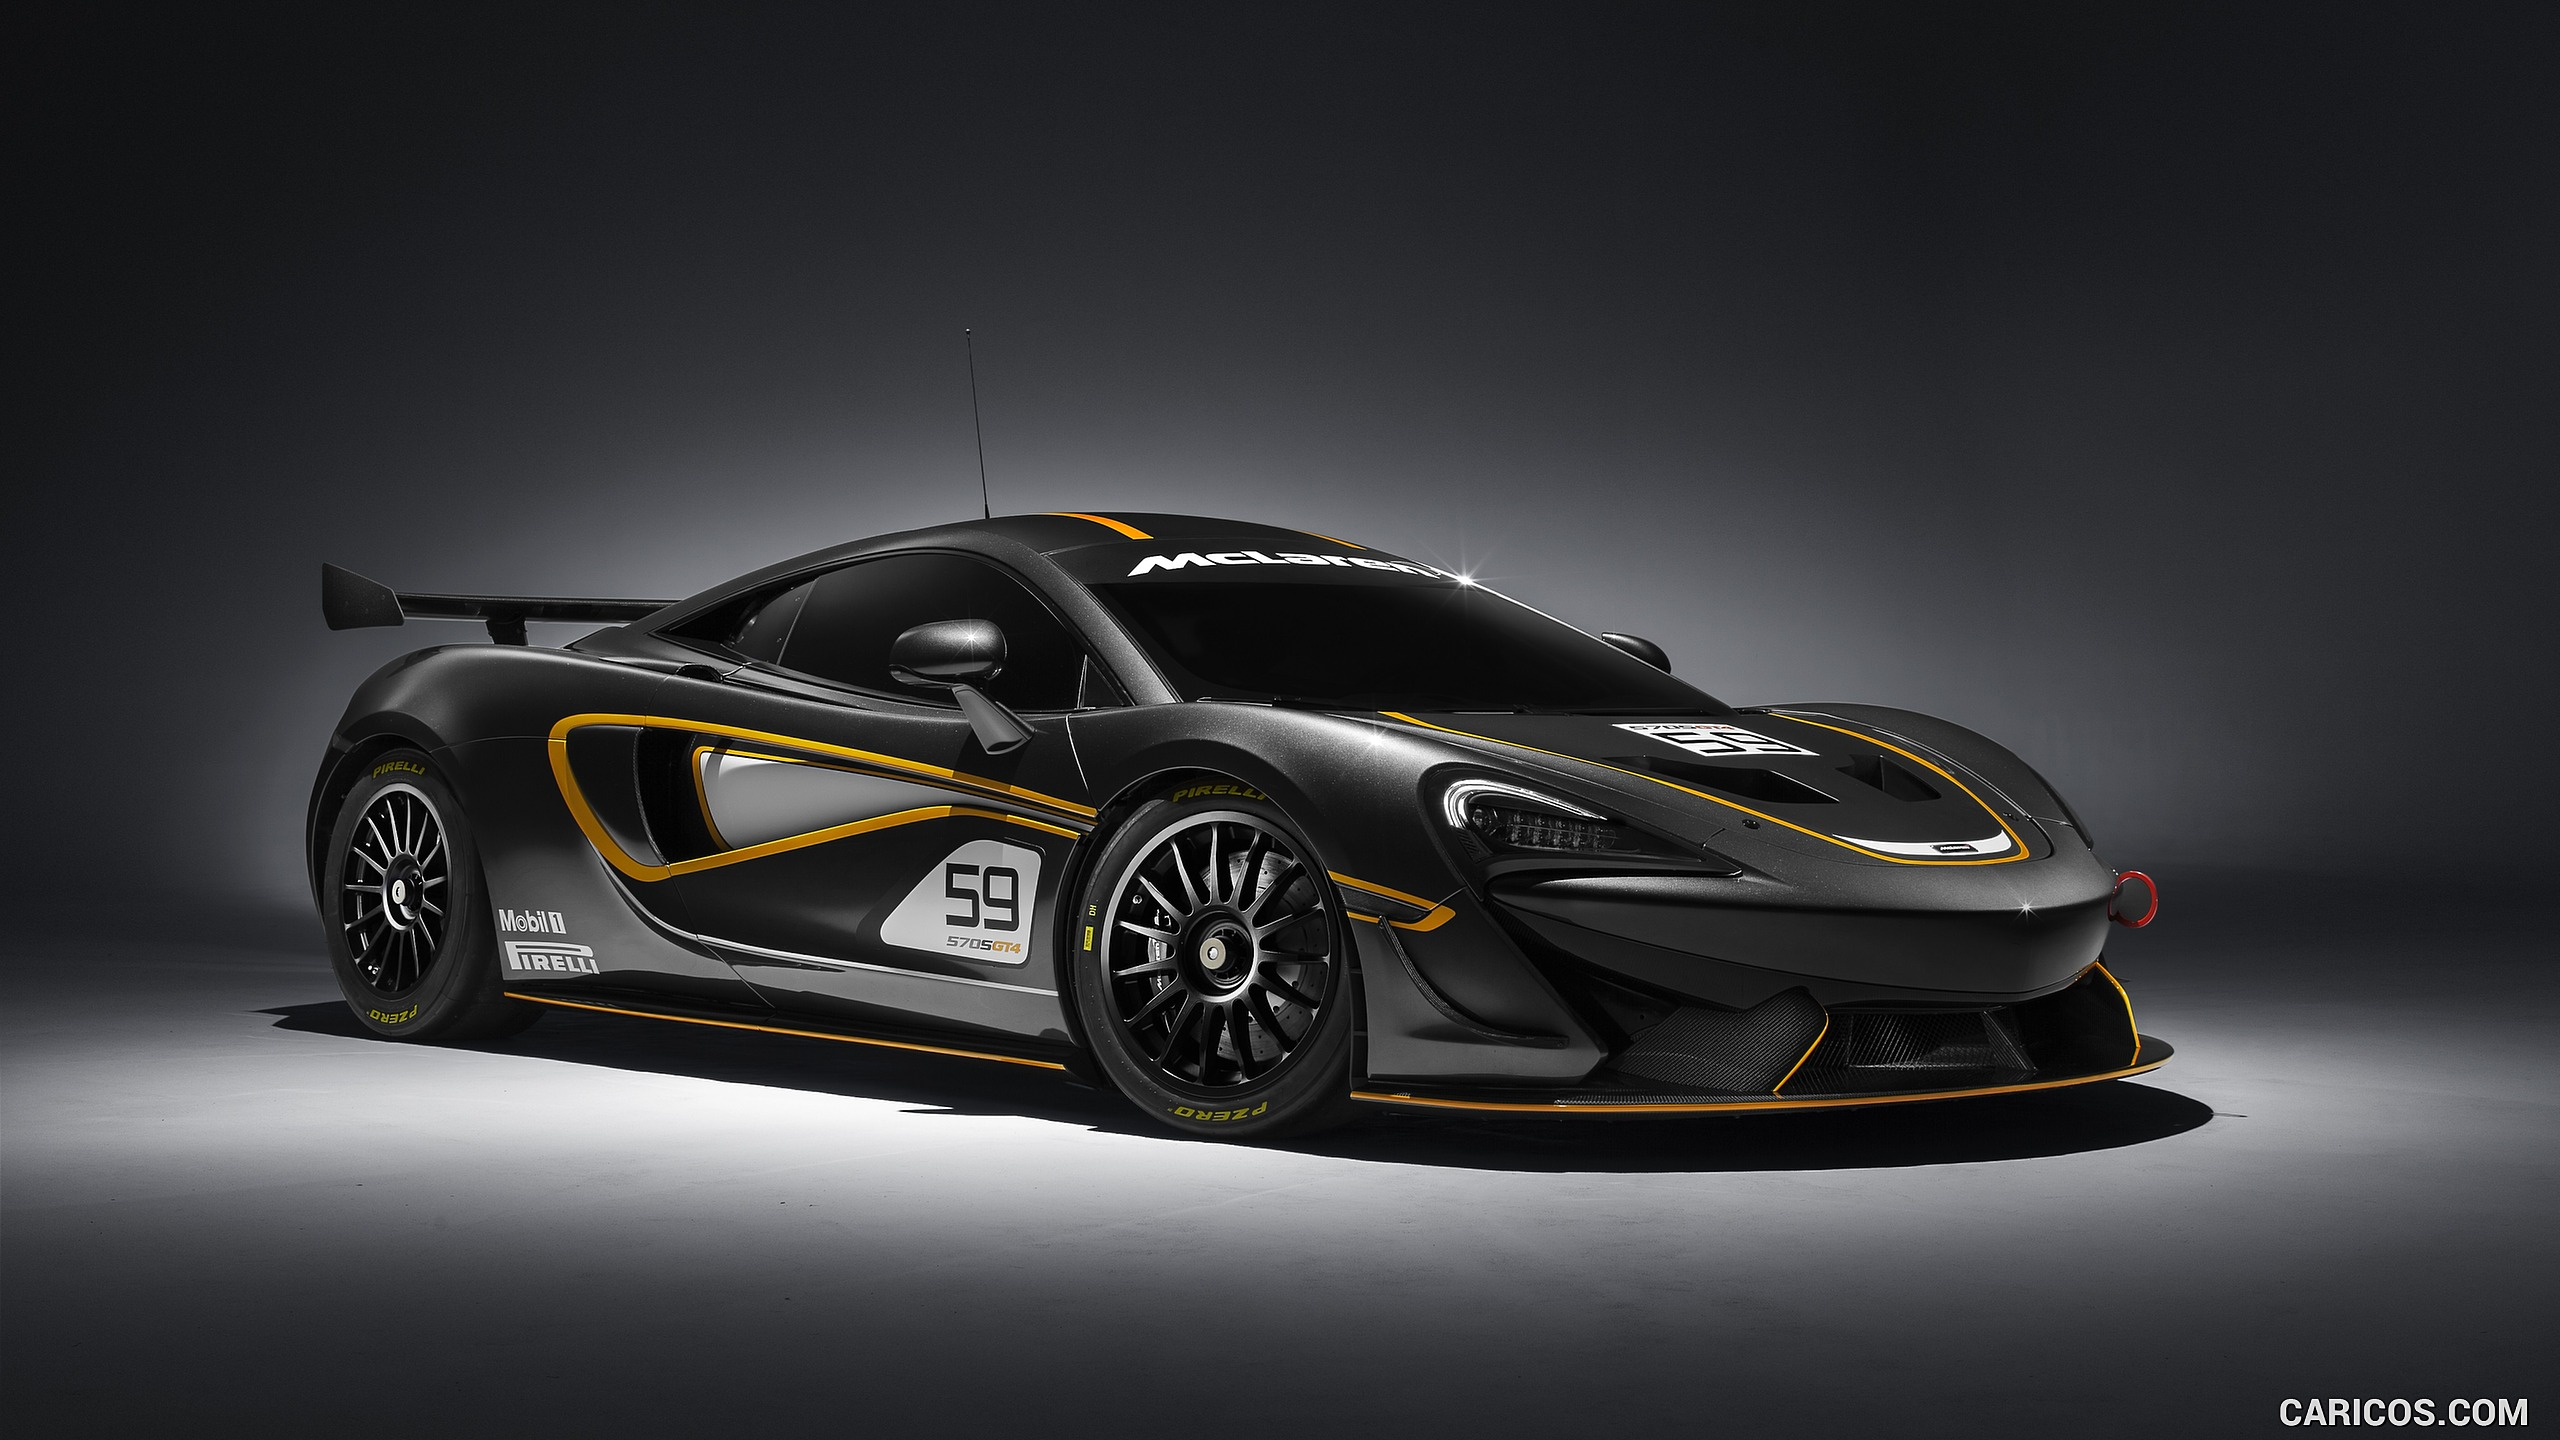 2560x1440 - McLaren 570S GT4 Wallpapers 31